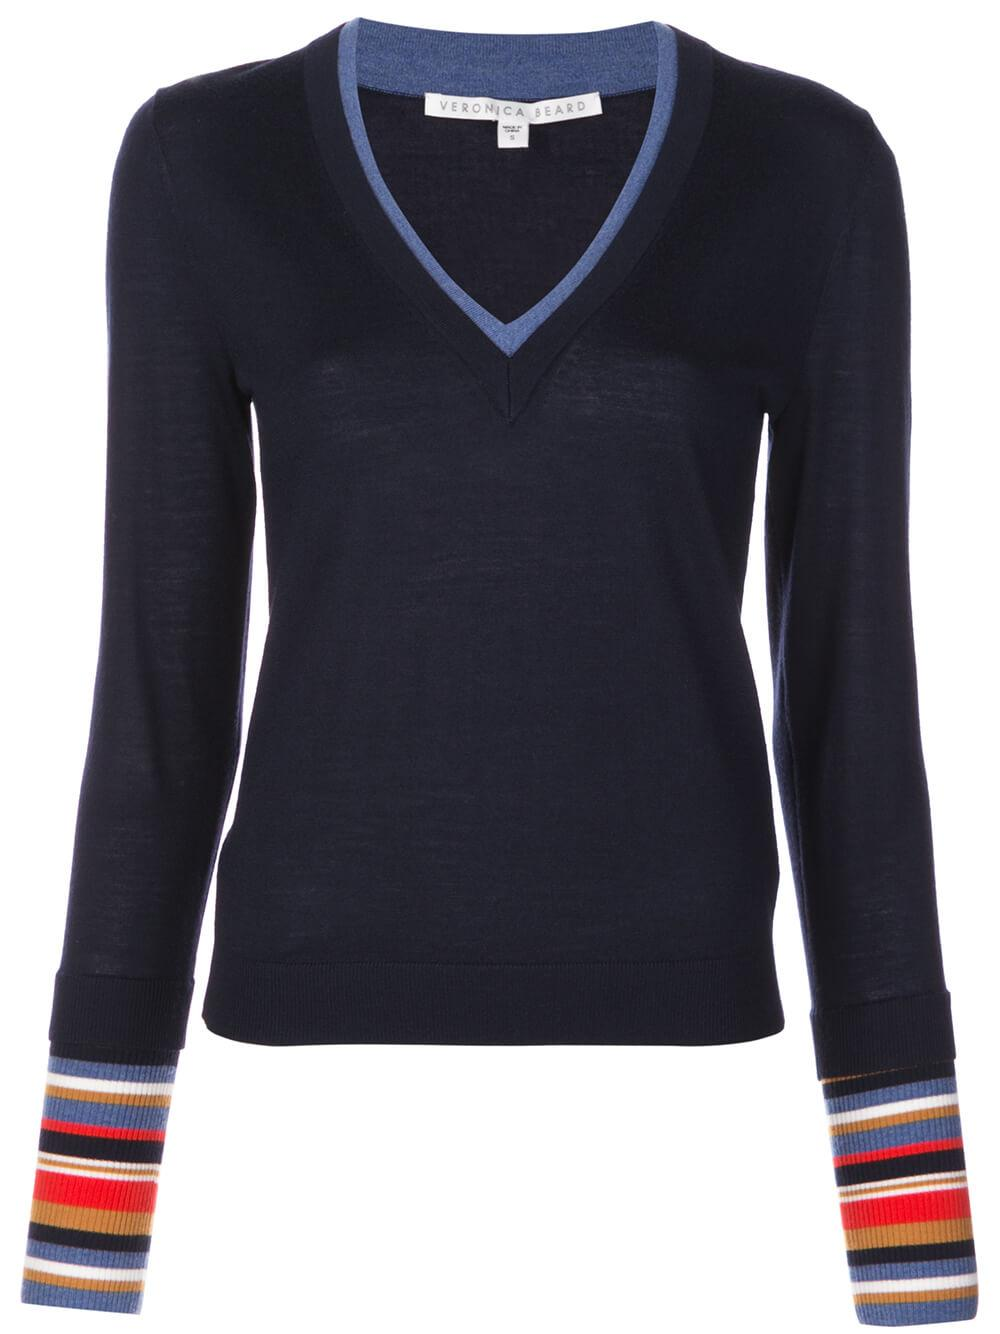 Avory Long Sleeve V- Neck Sweater Item # 2001KN0879258